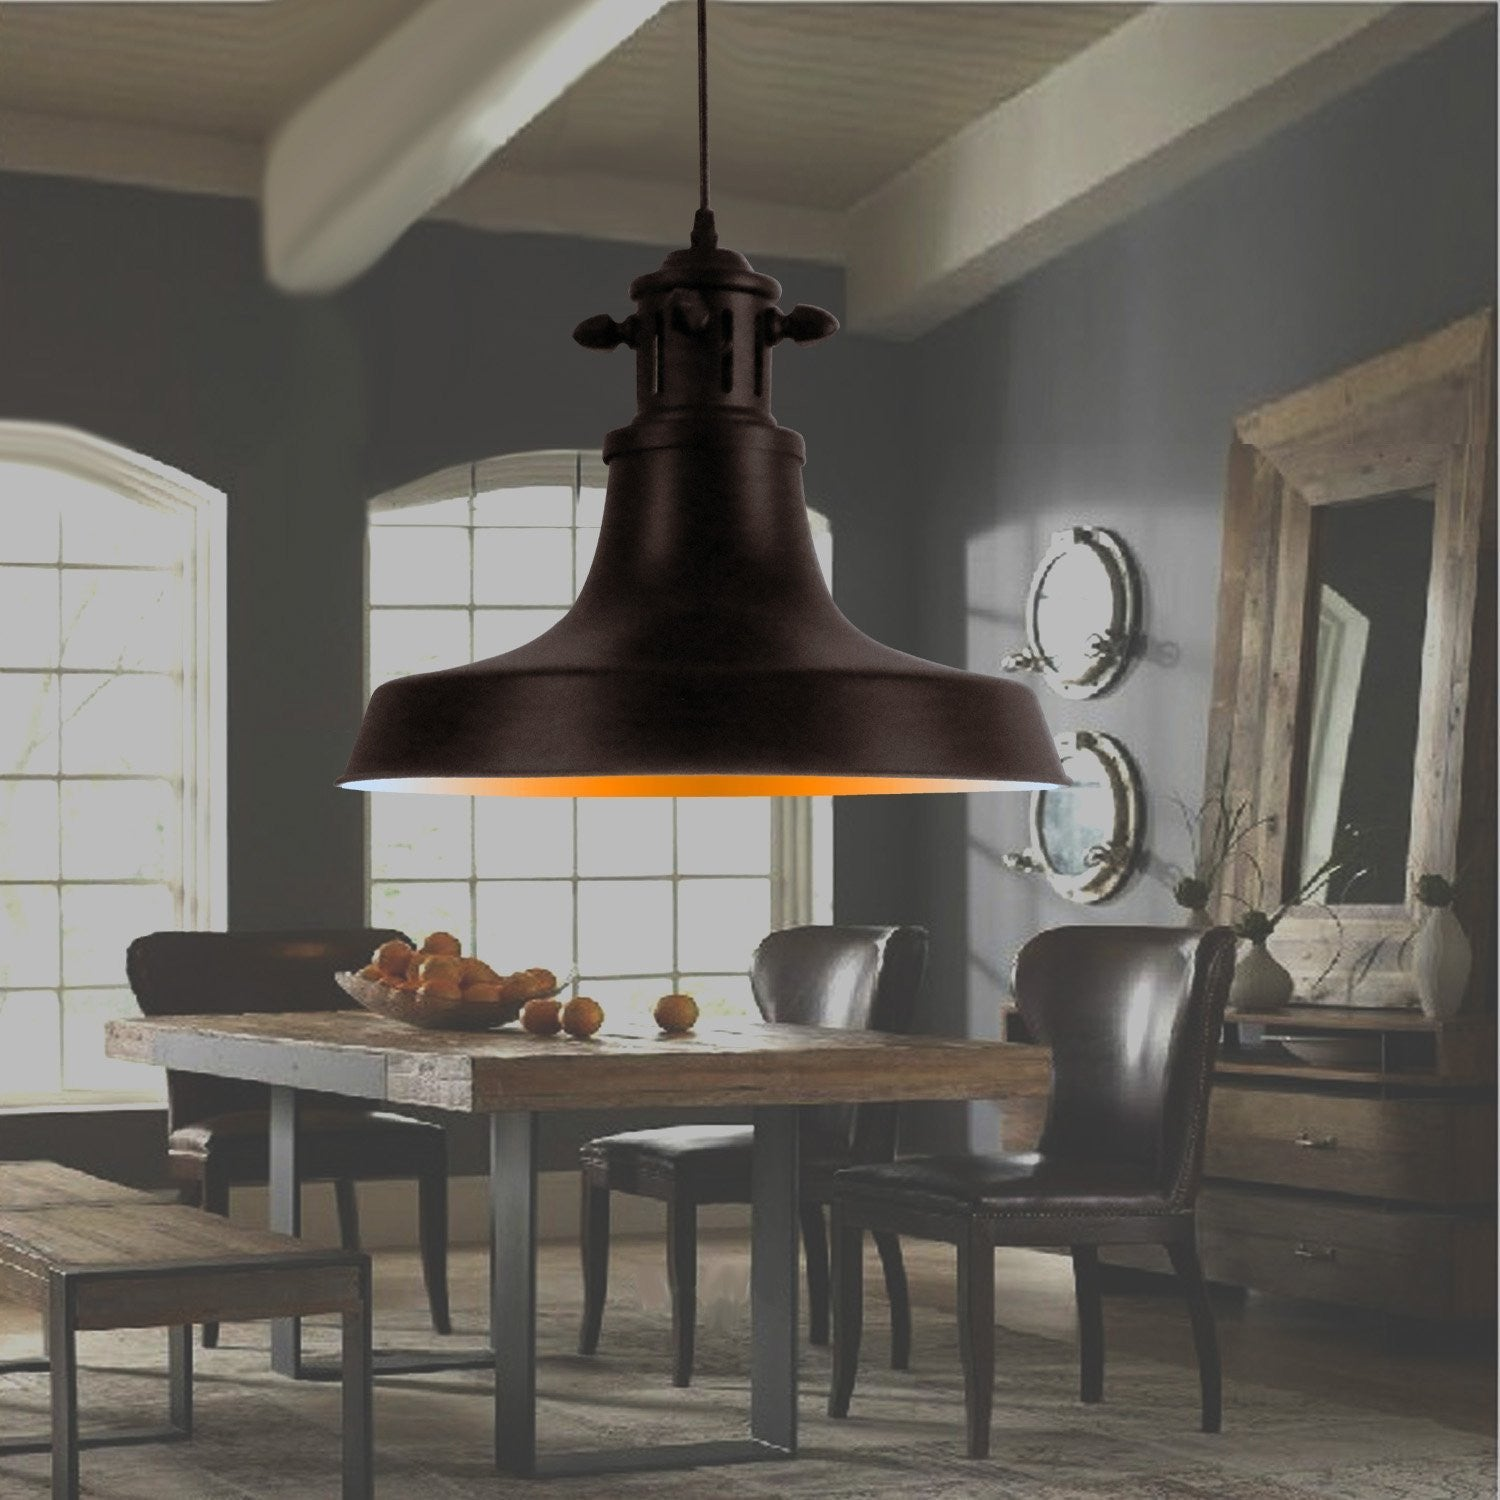 Unitary Brand Rustic Black Metal Shade Barn Pendant light with 1 E26 Bulb Socket 40W Painted Finish